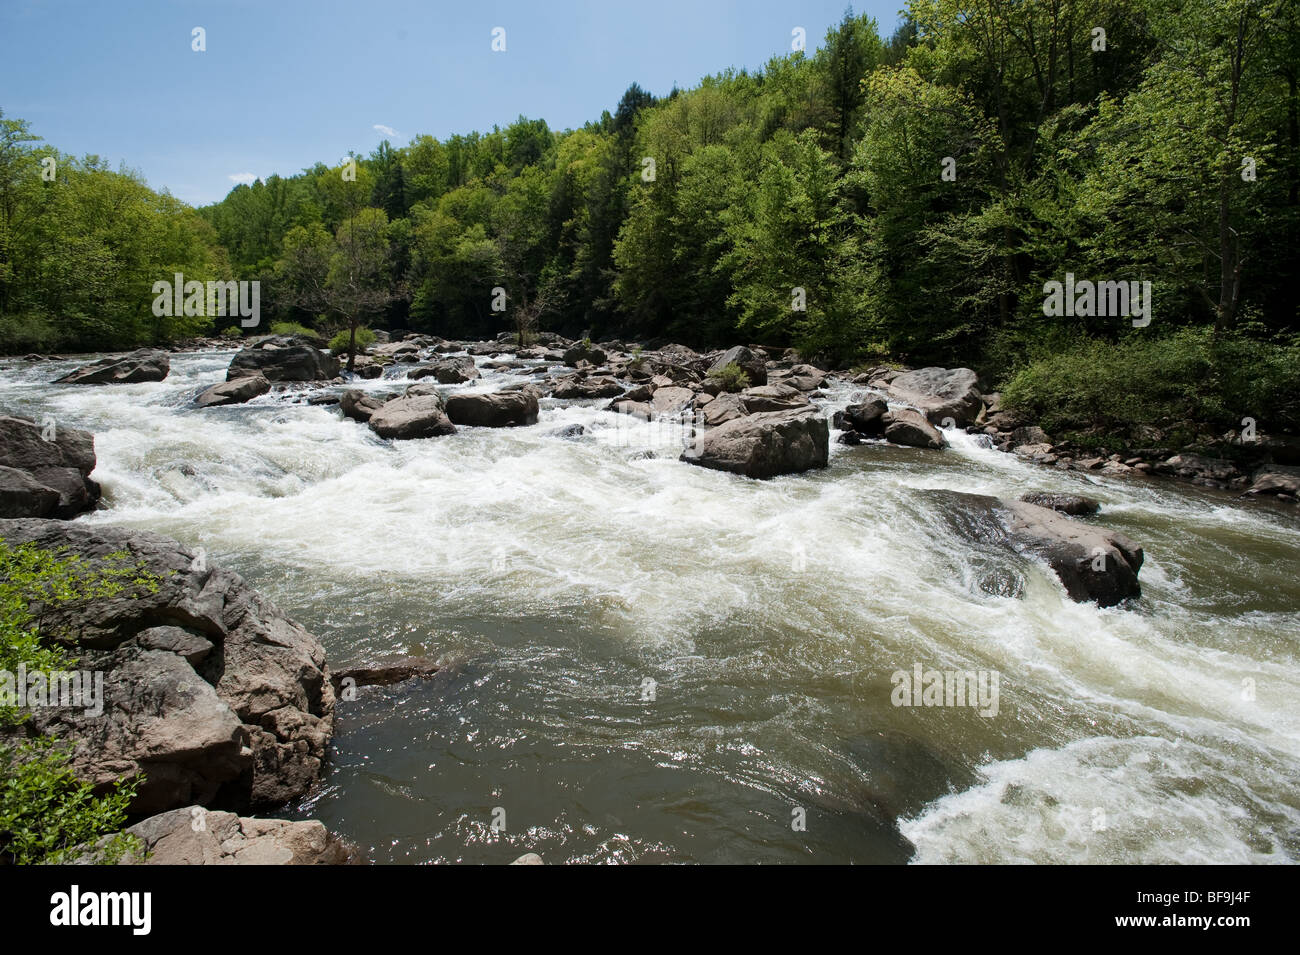 Whitewater on the Upper Youghageny River near Friendsville MD - Stock Image